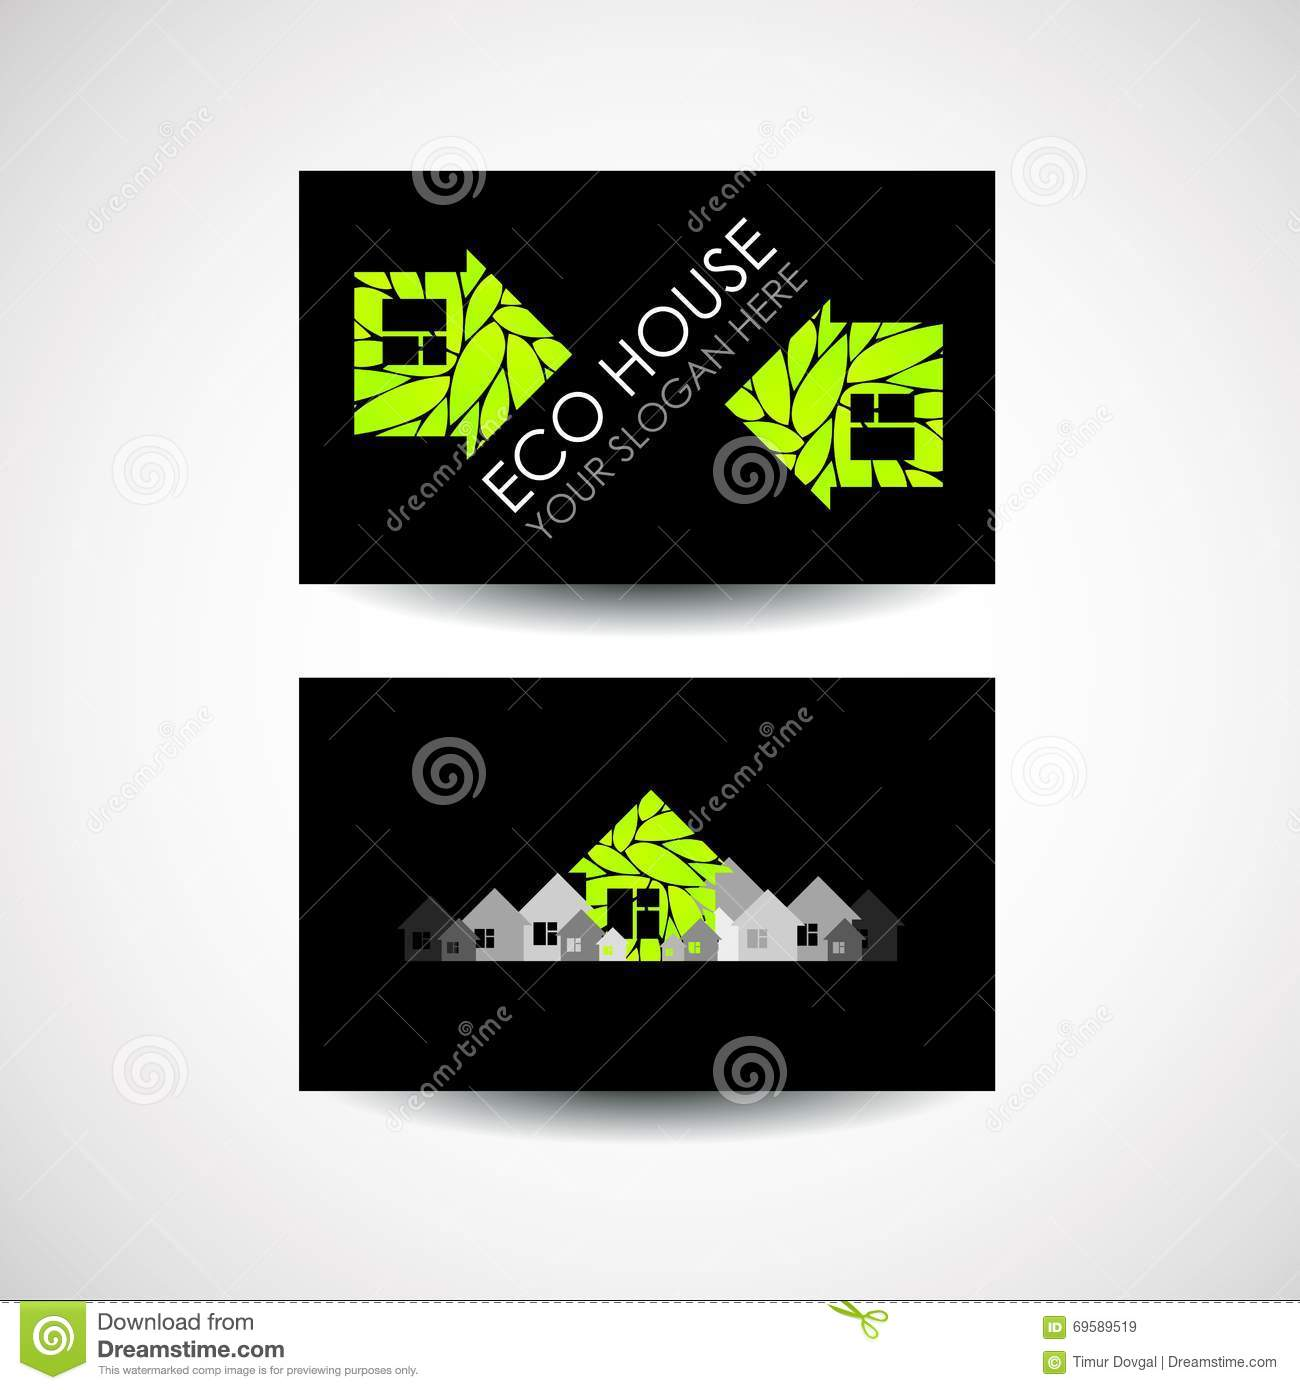 co House Logo nd Business ard Design. cological onstruction ... - ^